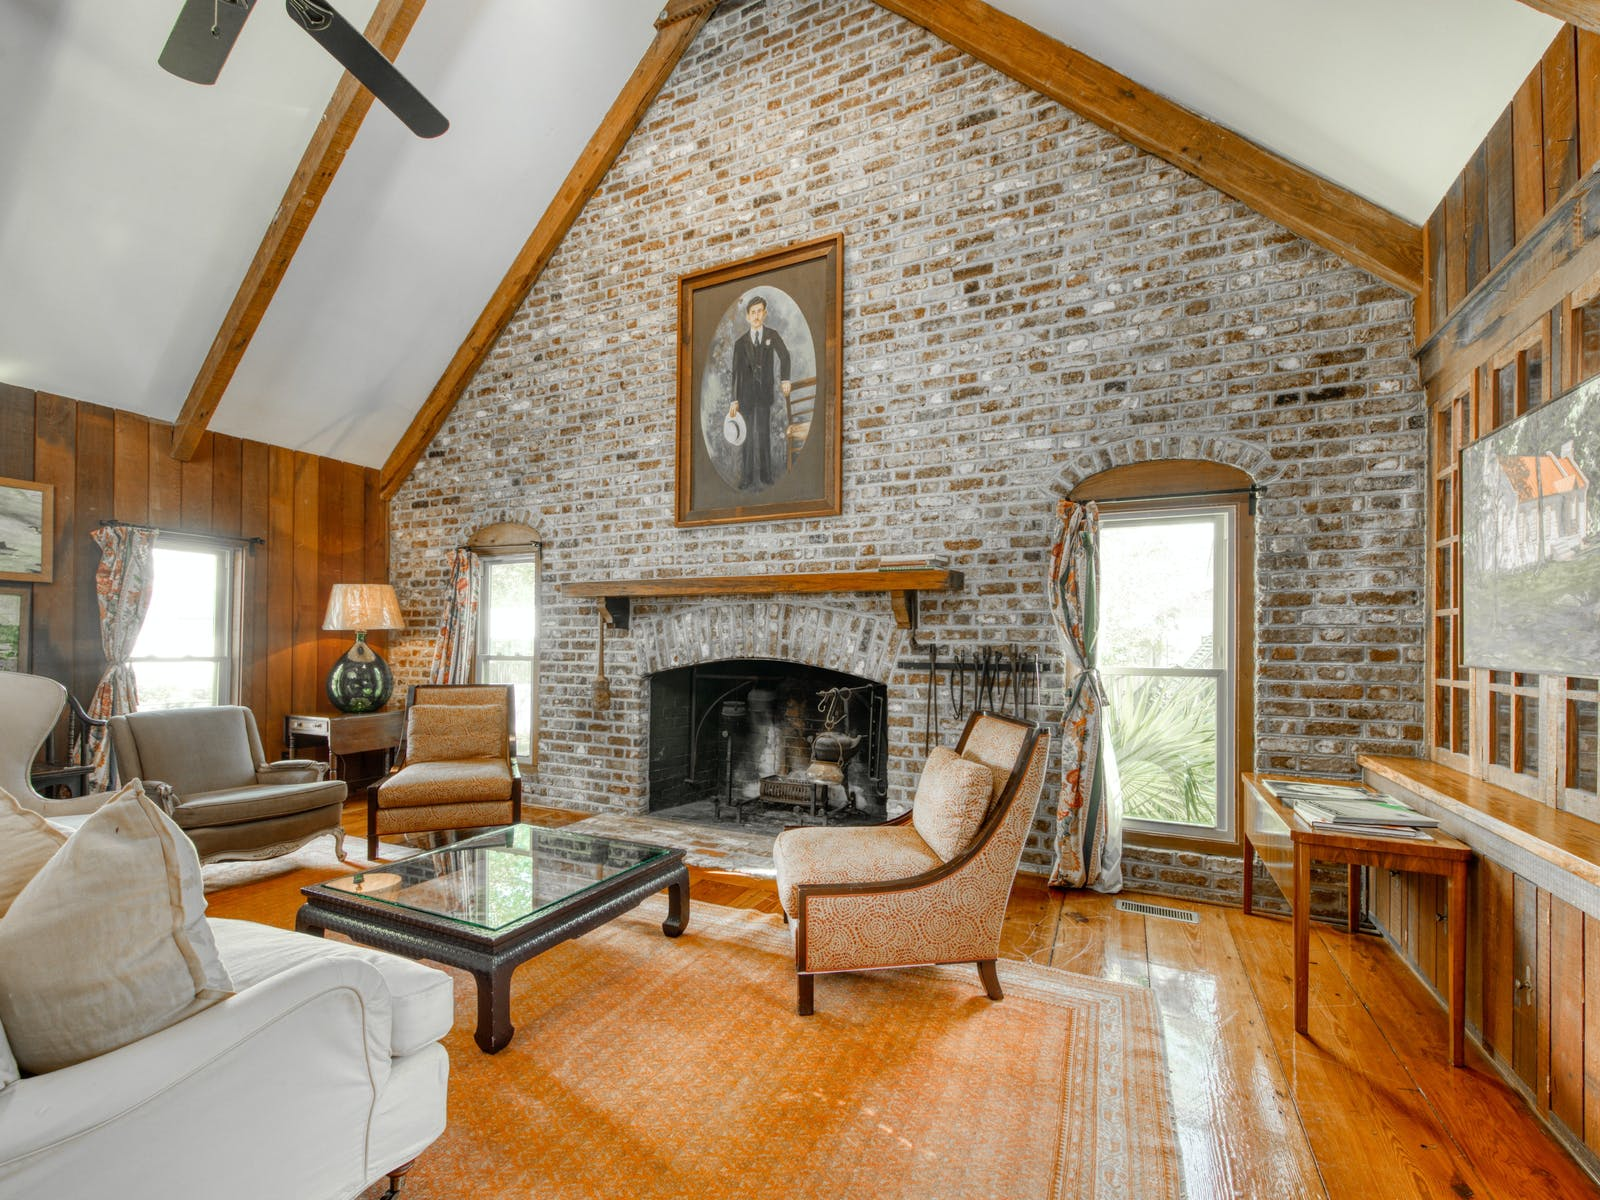 fireplace of South Carolina vacation home framed by antique bricks and vaulted ceilings